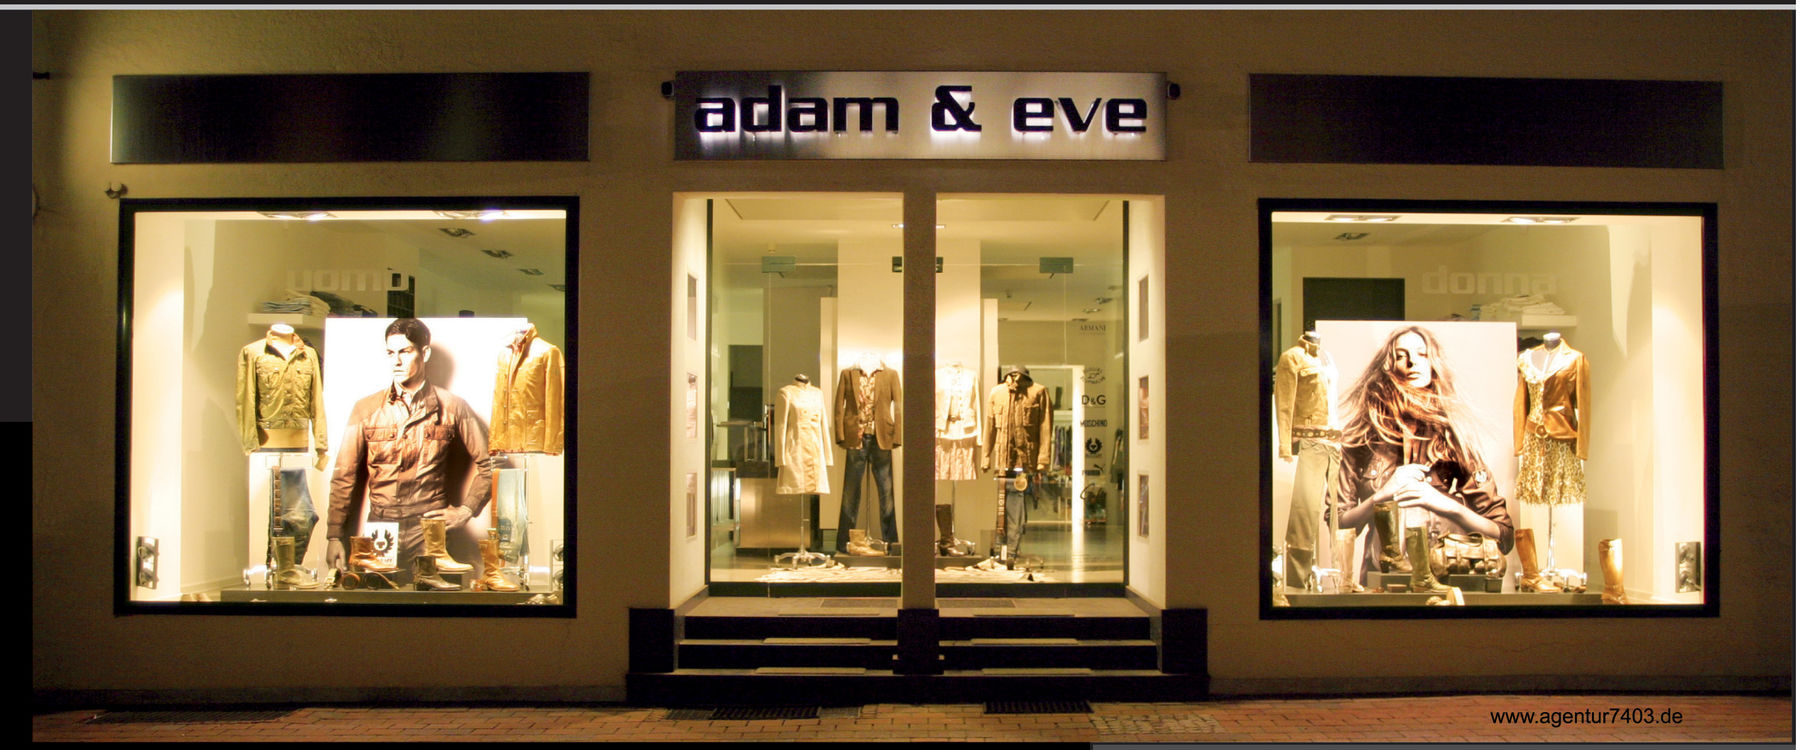 adam & eve in Prien (Bild 2)